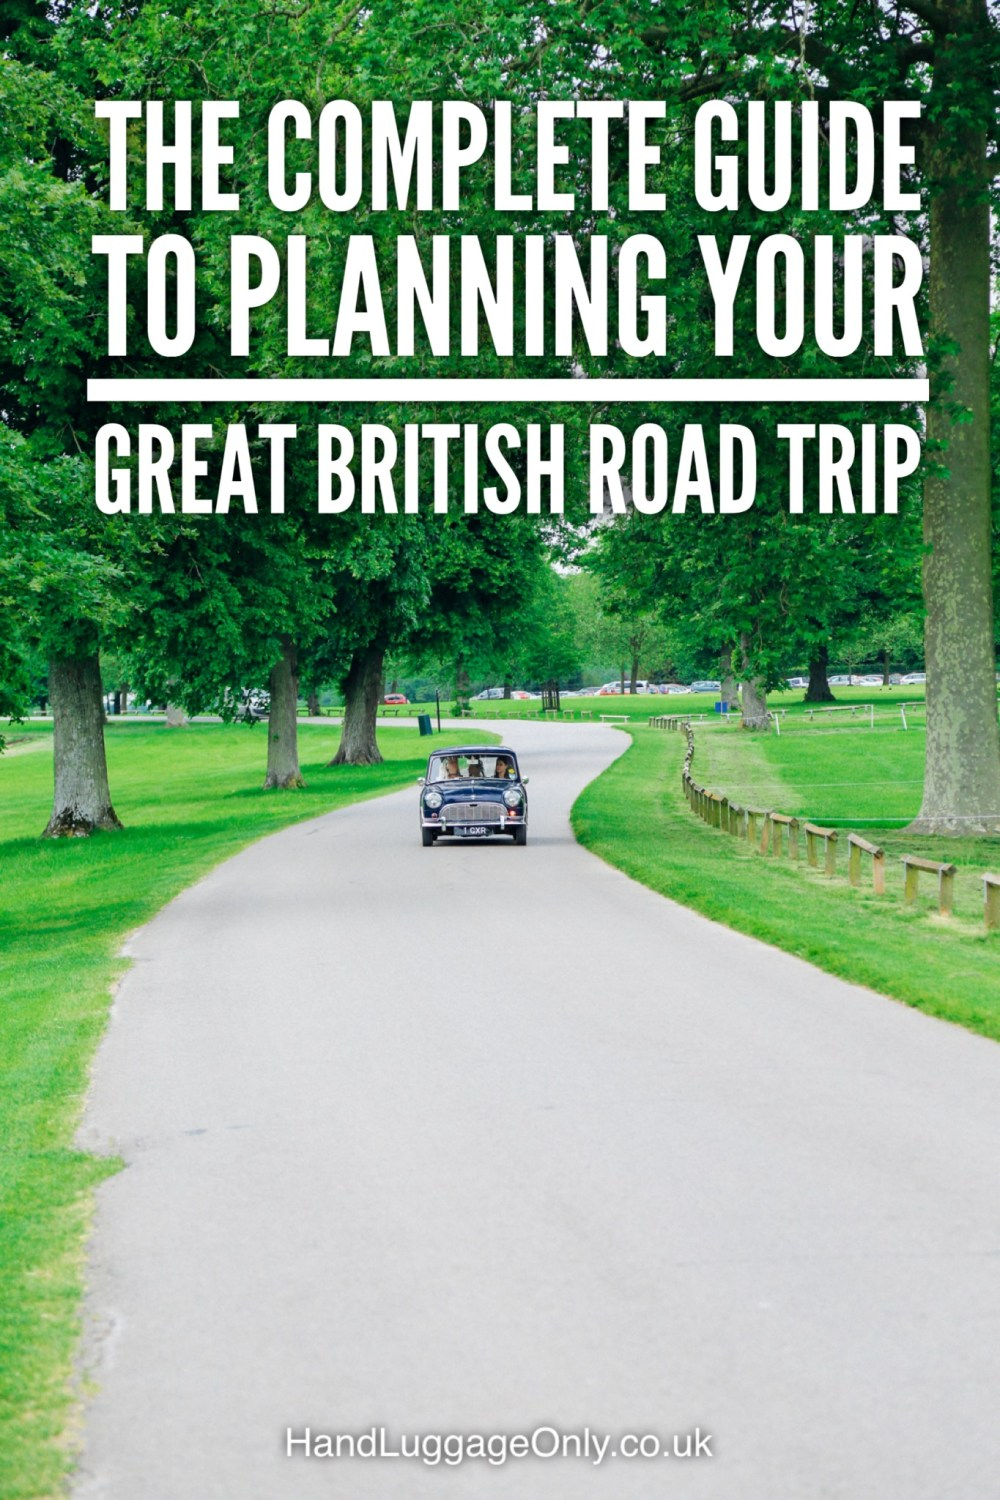 The Complete Guide To Planning Your Great British Road Trip (1)